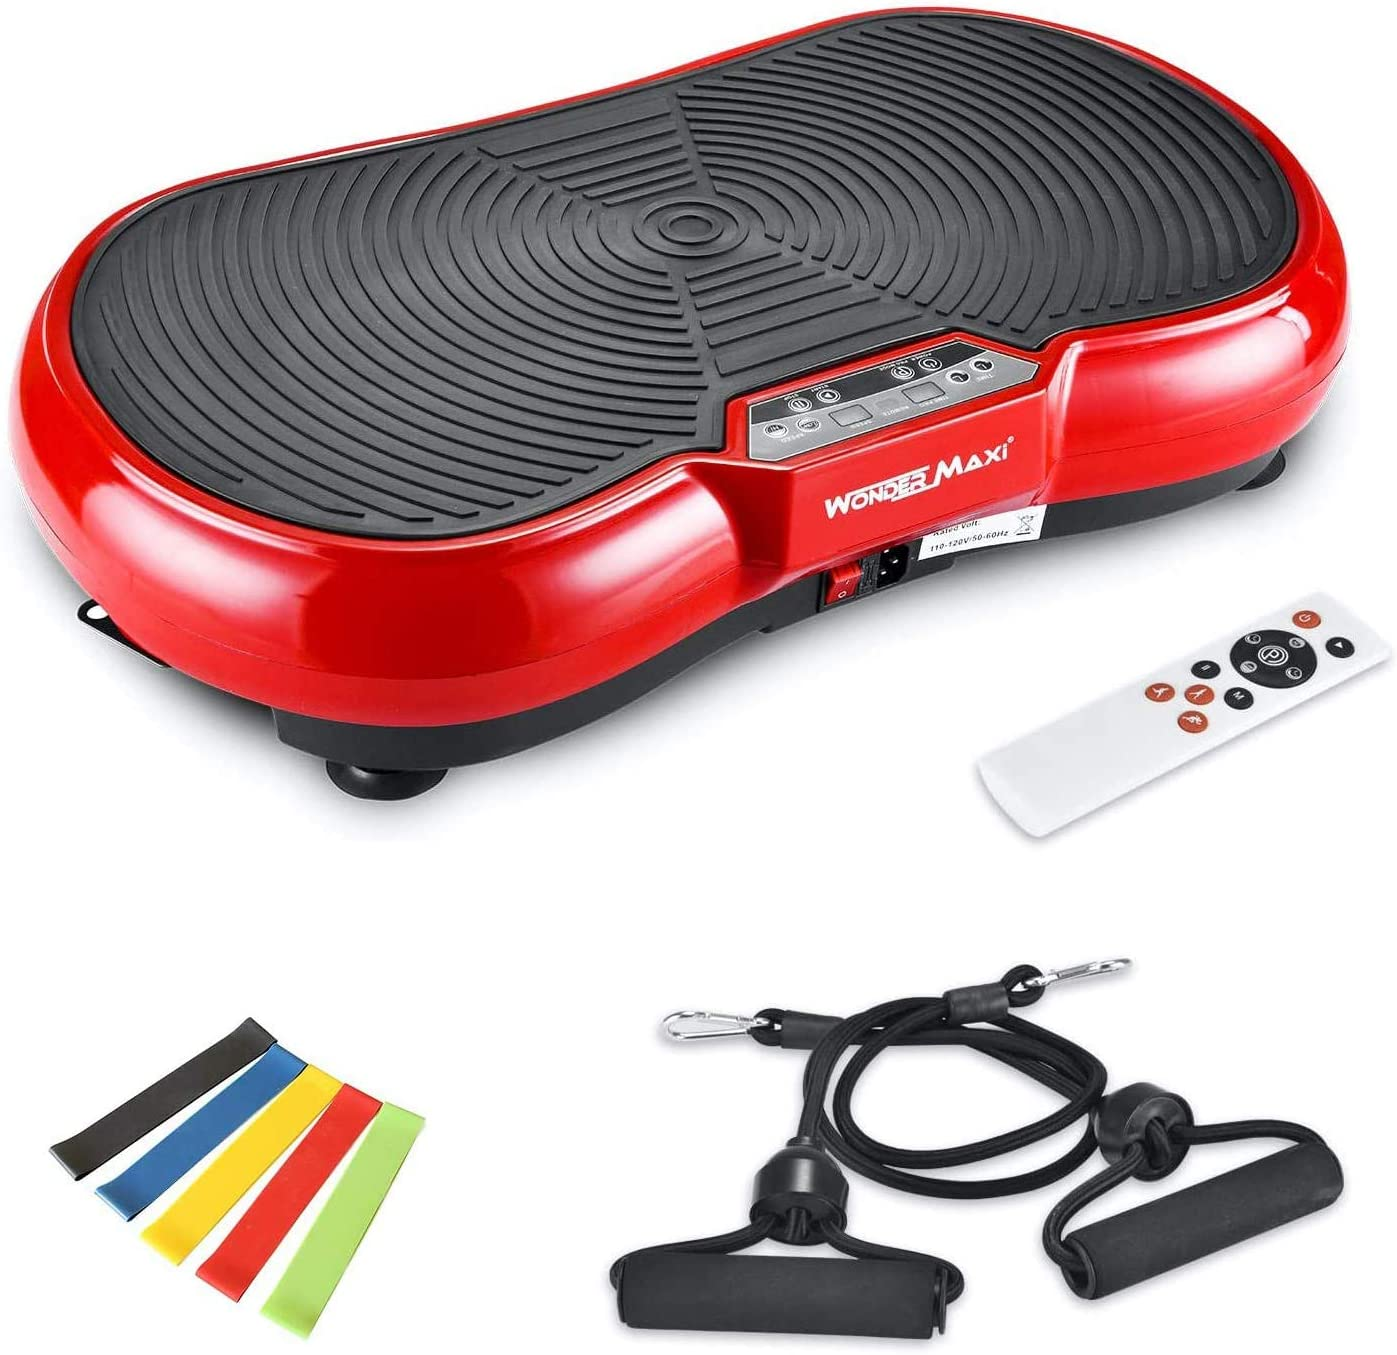 Wonder Maxi 3D Vibration Plate Work Machine Body Whole favorite Exercise It is very popular